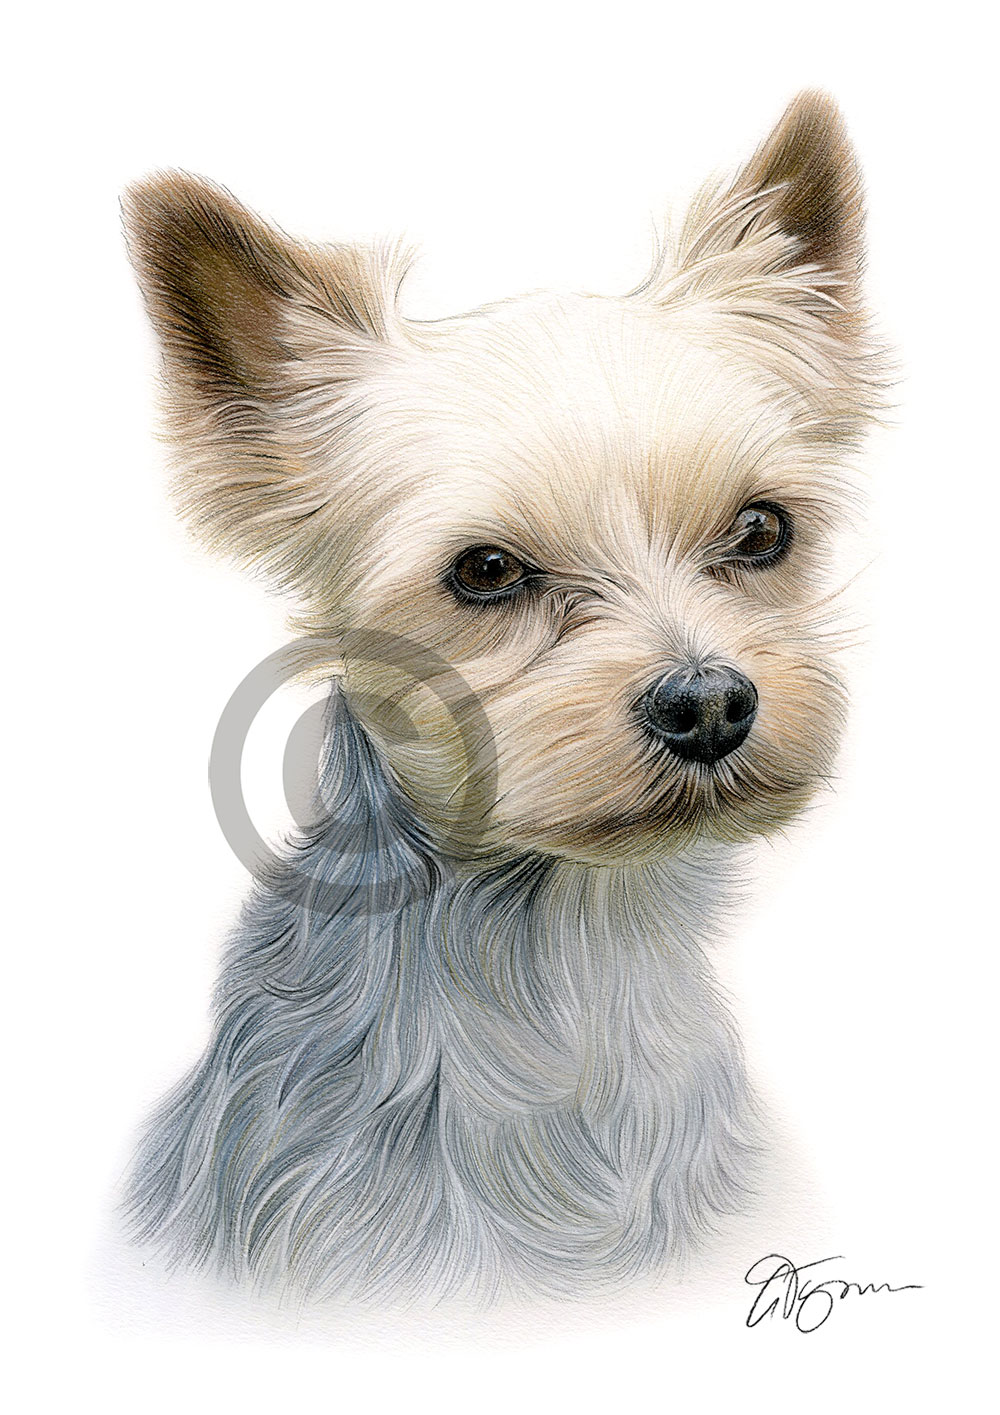 Colour pencil drawing of a Yorkshire Terrier by artist Gary Tymon